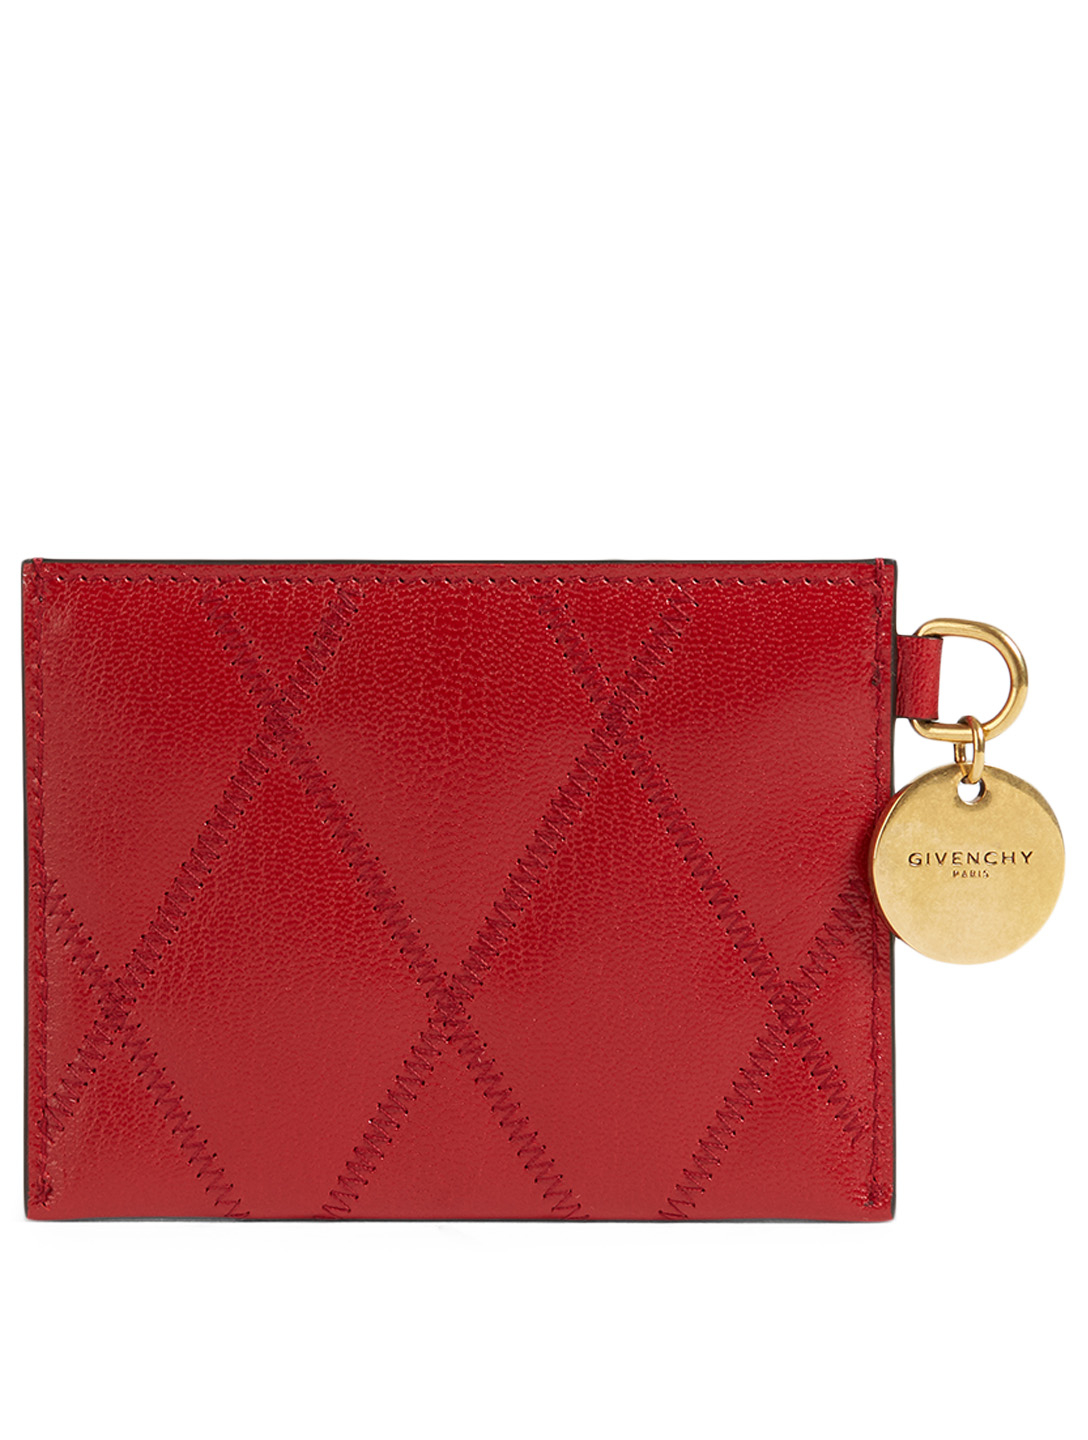 GIVENCHY GV3 Leather Card Holder Women's Red